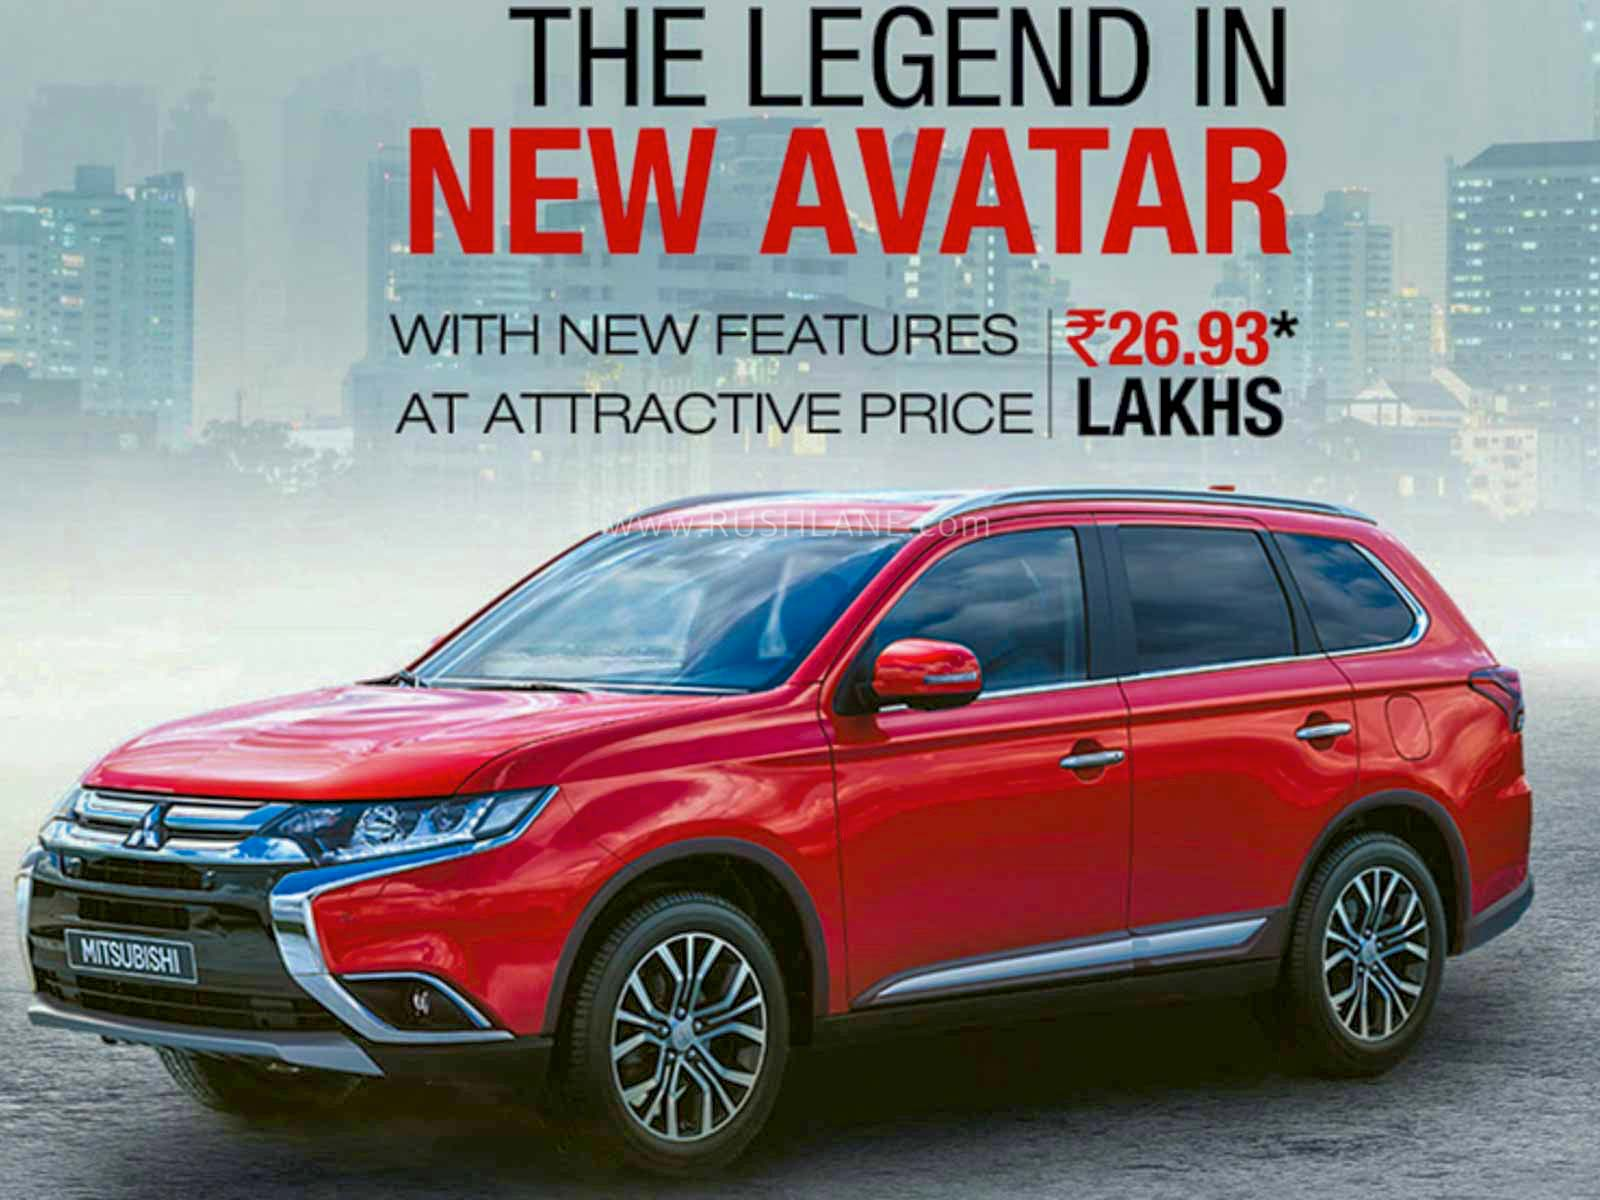 Mitsubishi Outlander SUV price cut